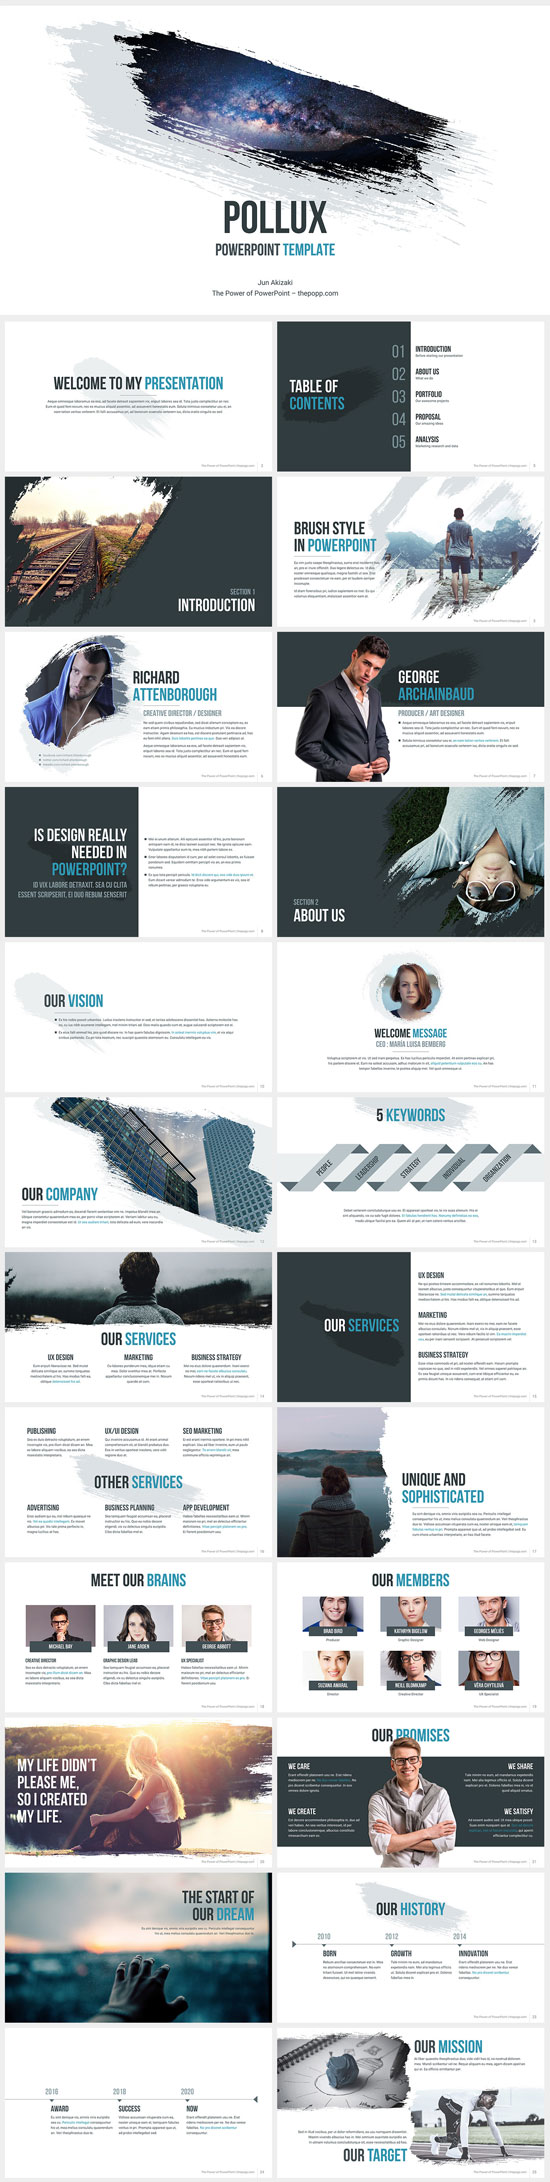 Free PowerPoint templates collection no. 8